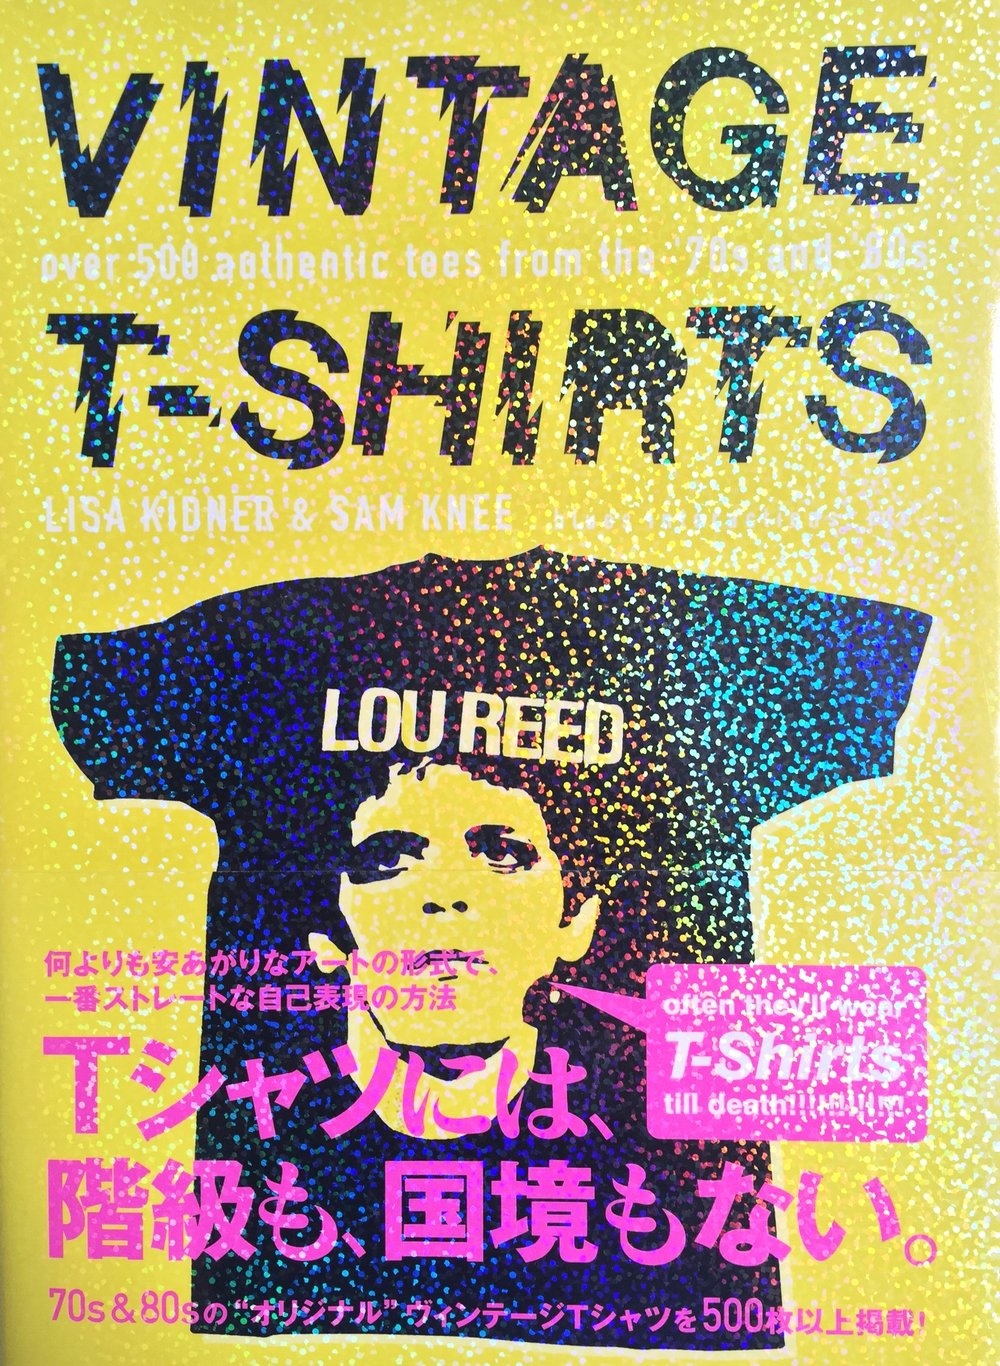 Vintage T Shirts, 500 authentic t shirts from the 70's and 80's (blues interactions books, Japan 2006) by Sam knee and Lisa Kidner. Initially published in the UK by Carlton Books